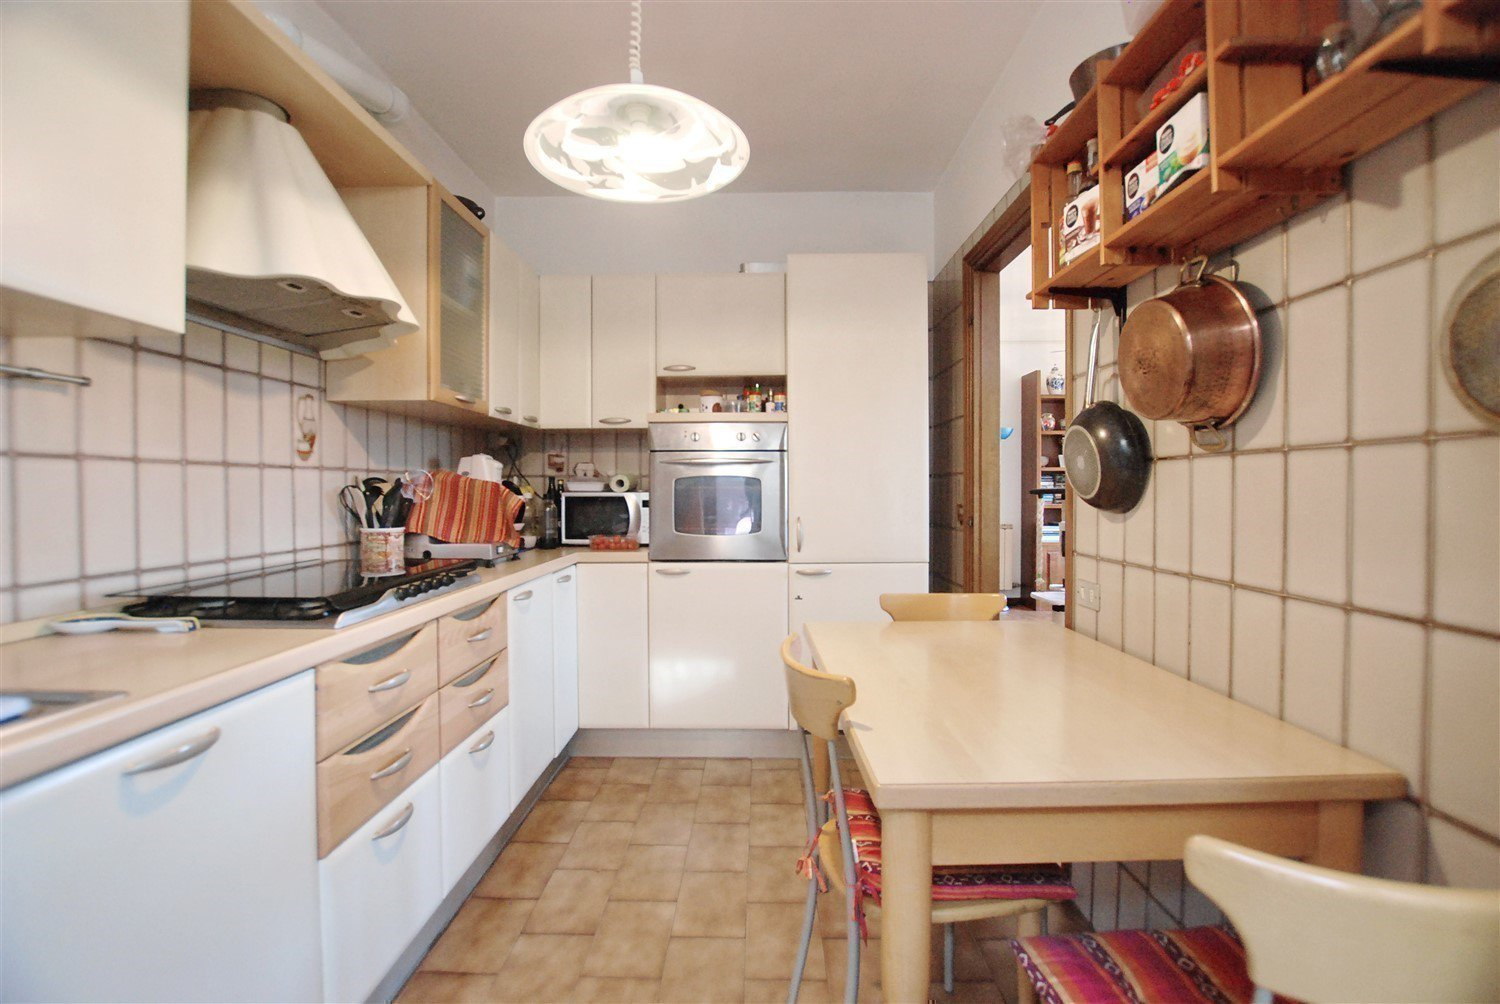 House for sale in Belgirate - kitchen